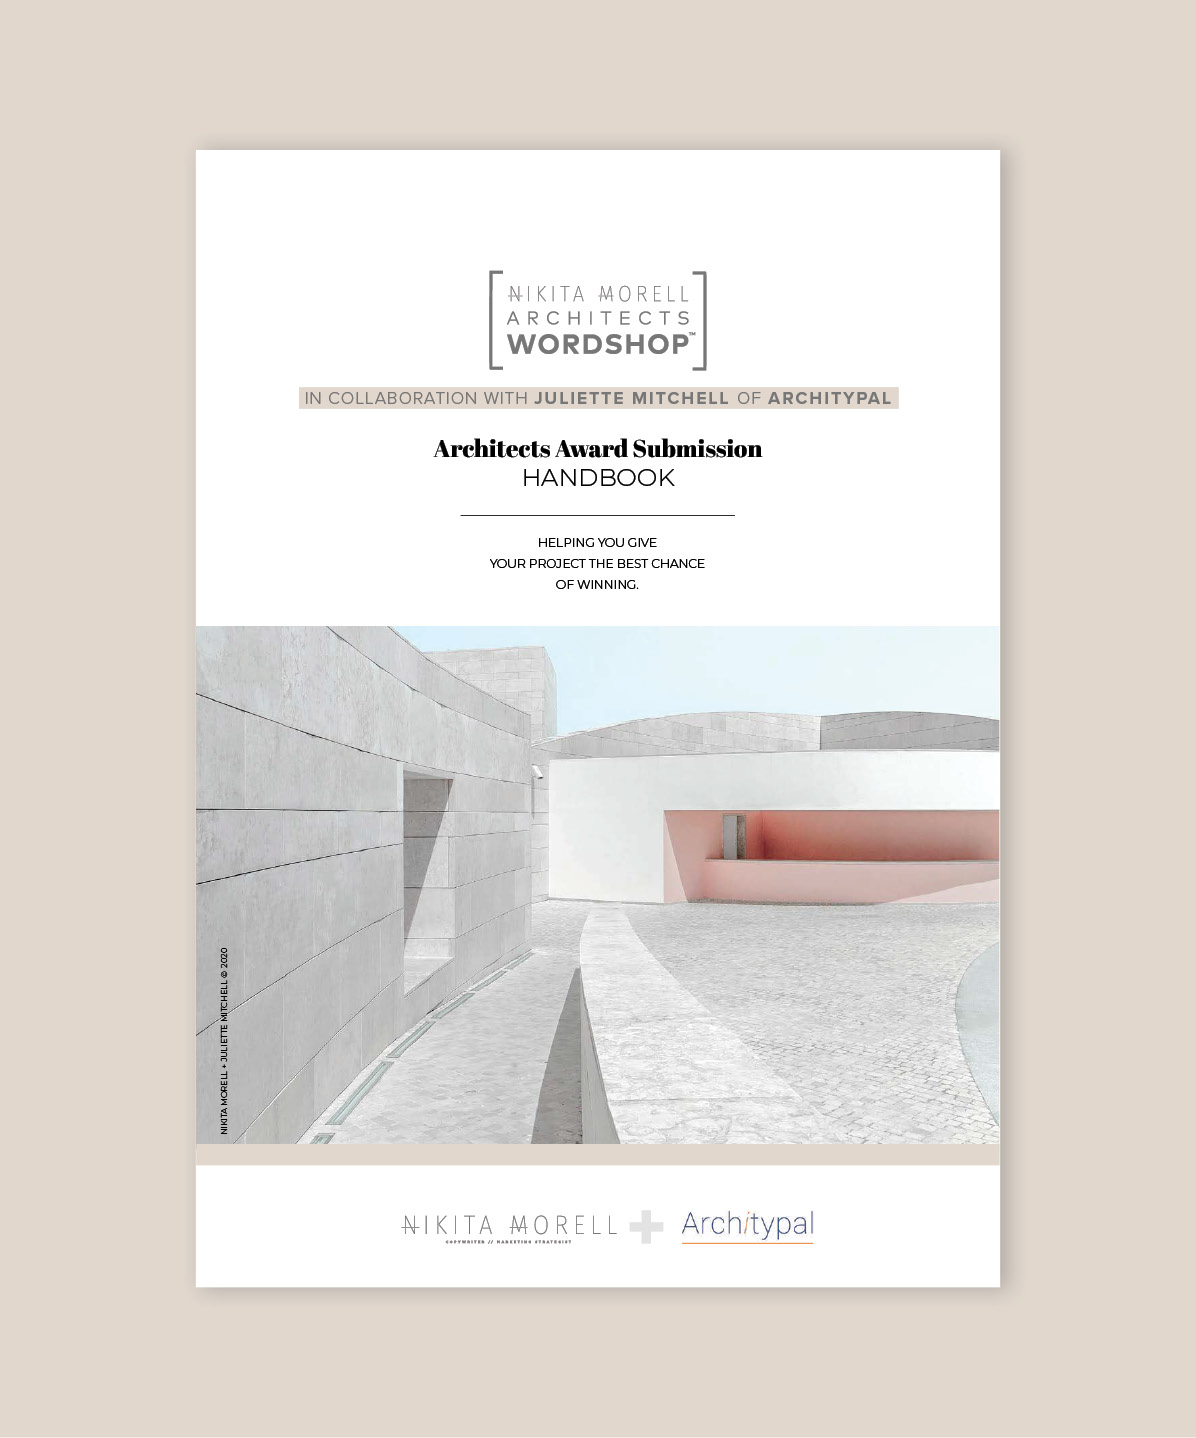 Architect Award Submission Handbook Cover